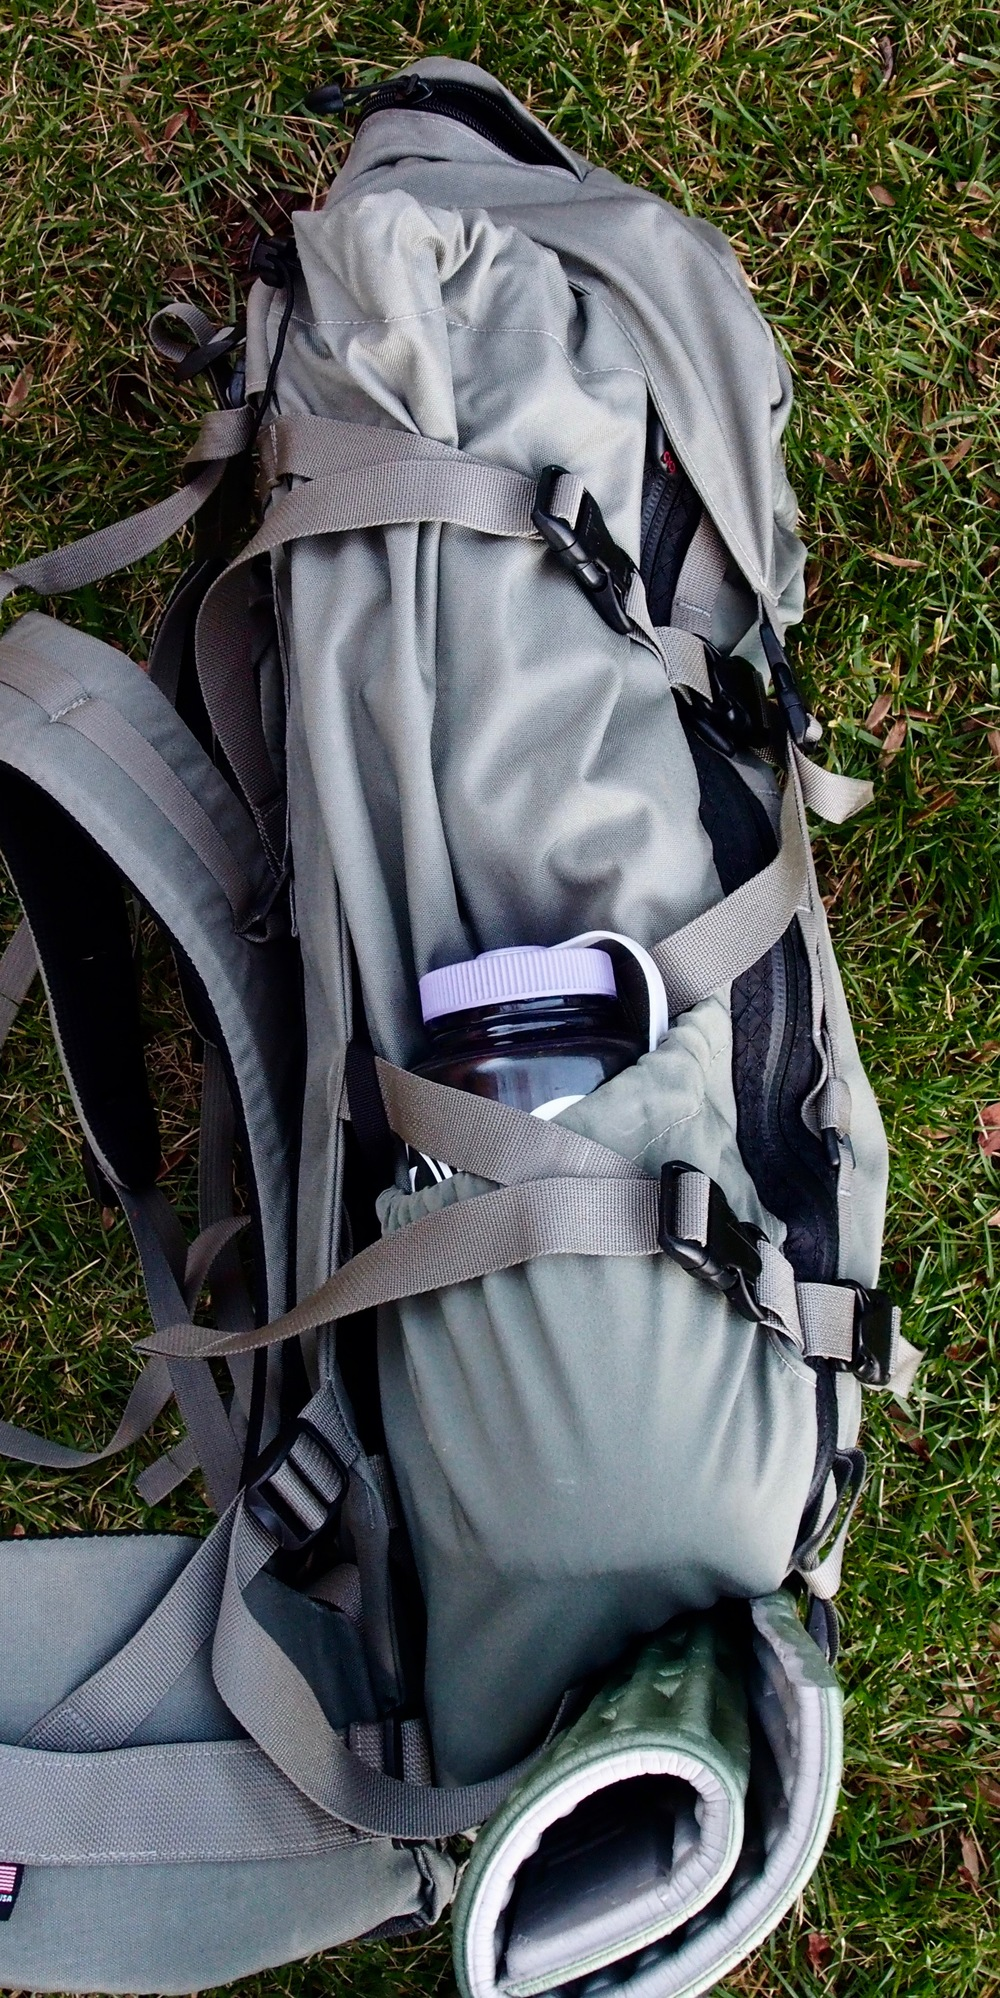 Two stretch pockets on either side of the Exo pack easily fit a 1 liter Nalgene bottle.